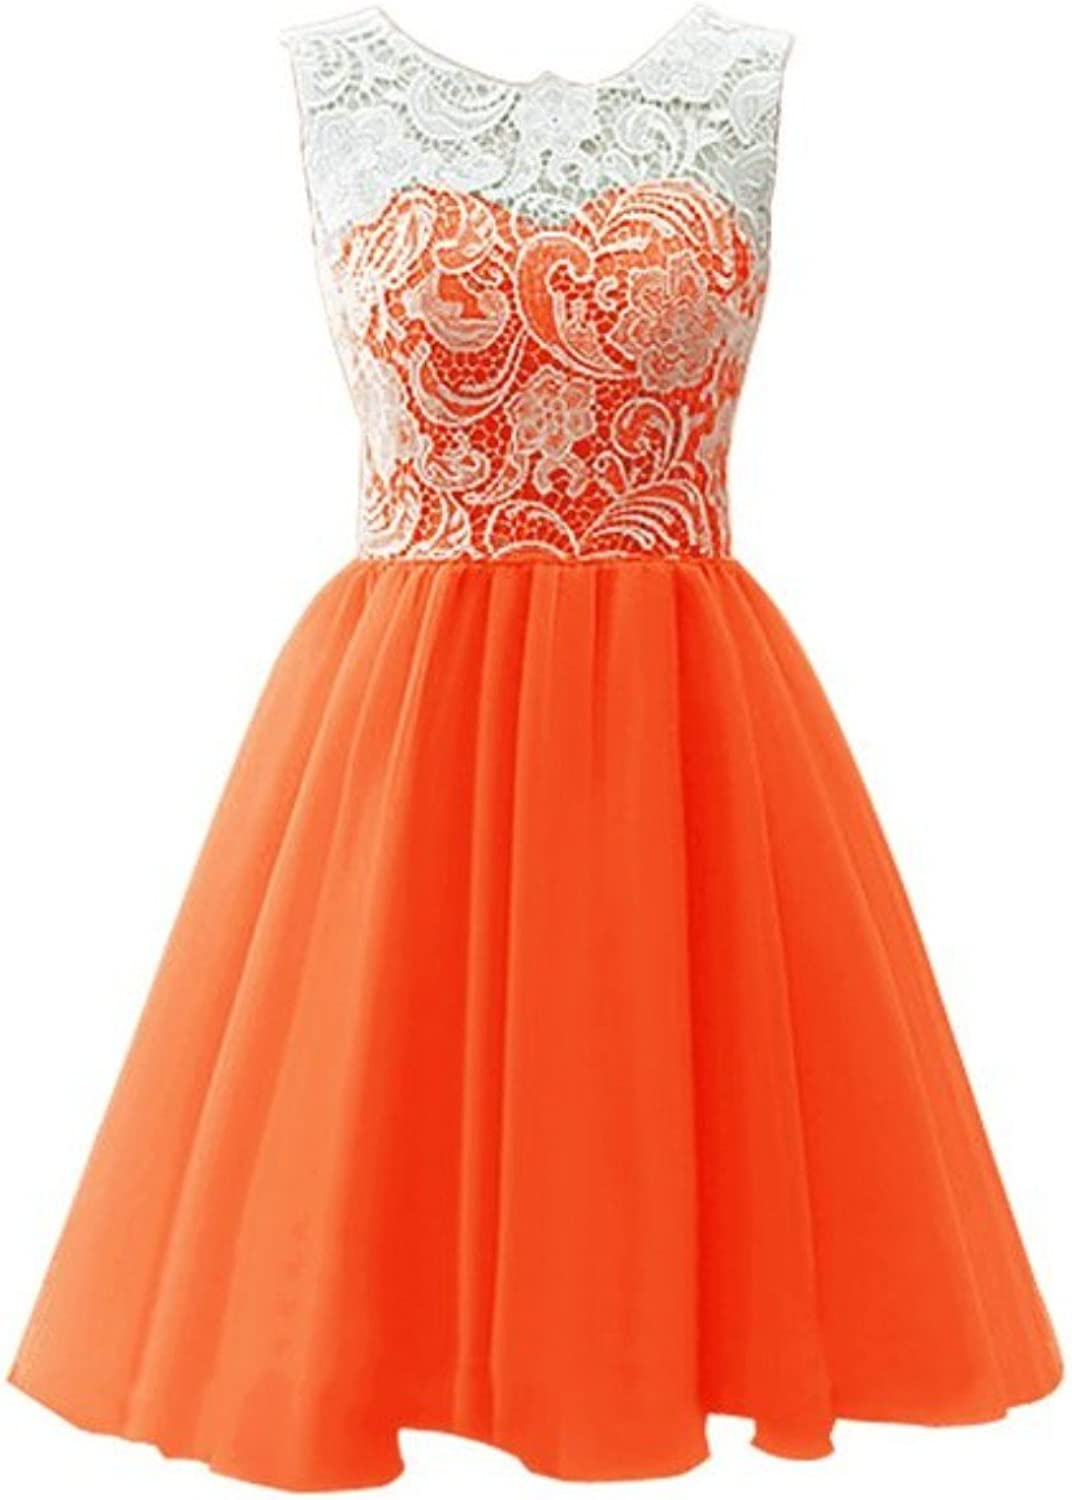 Fanciest Women's 2016 Tulle Lace Prom Dresses Short Homecoming Dress